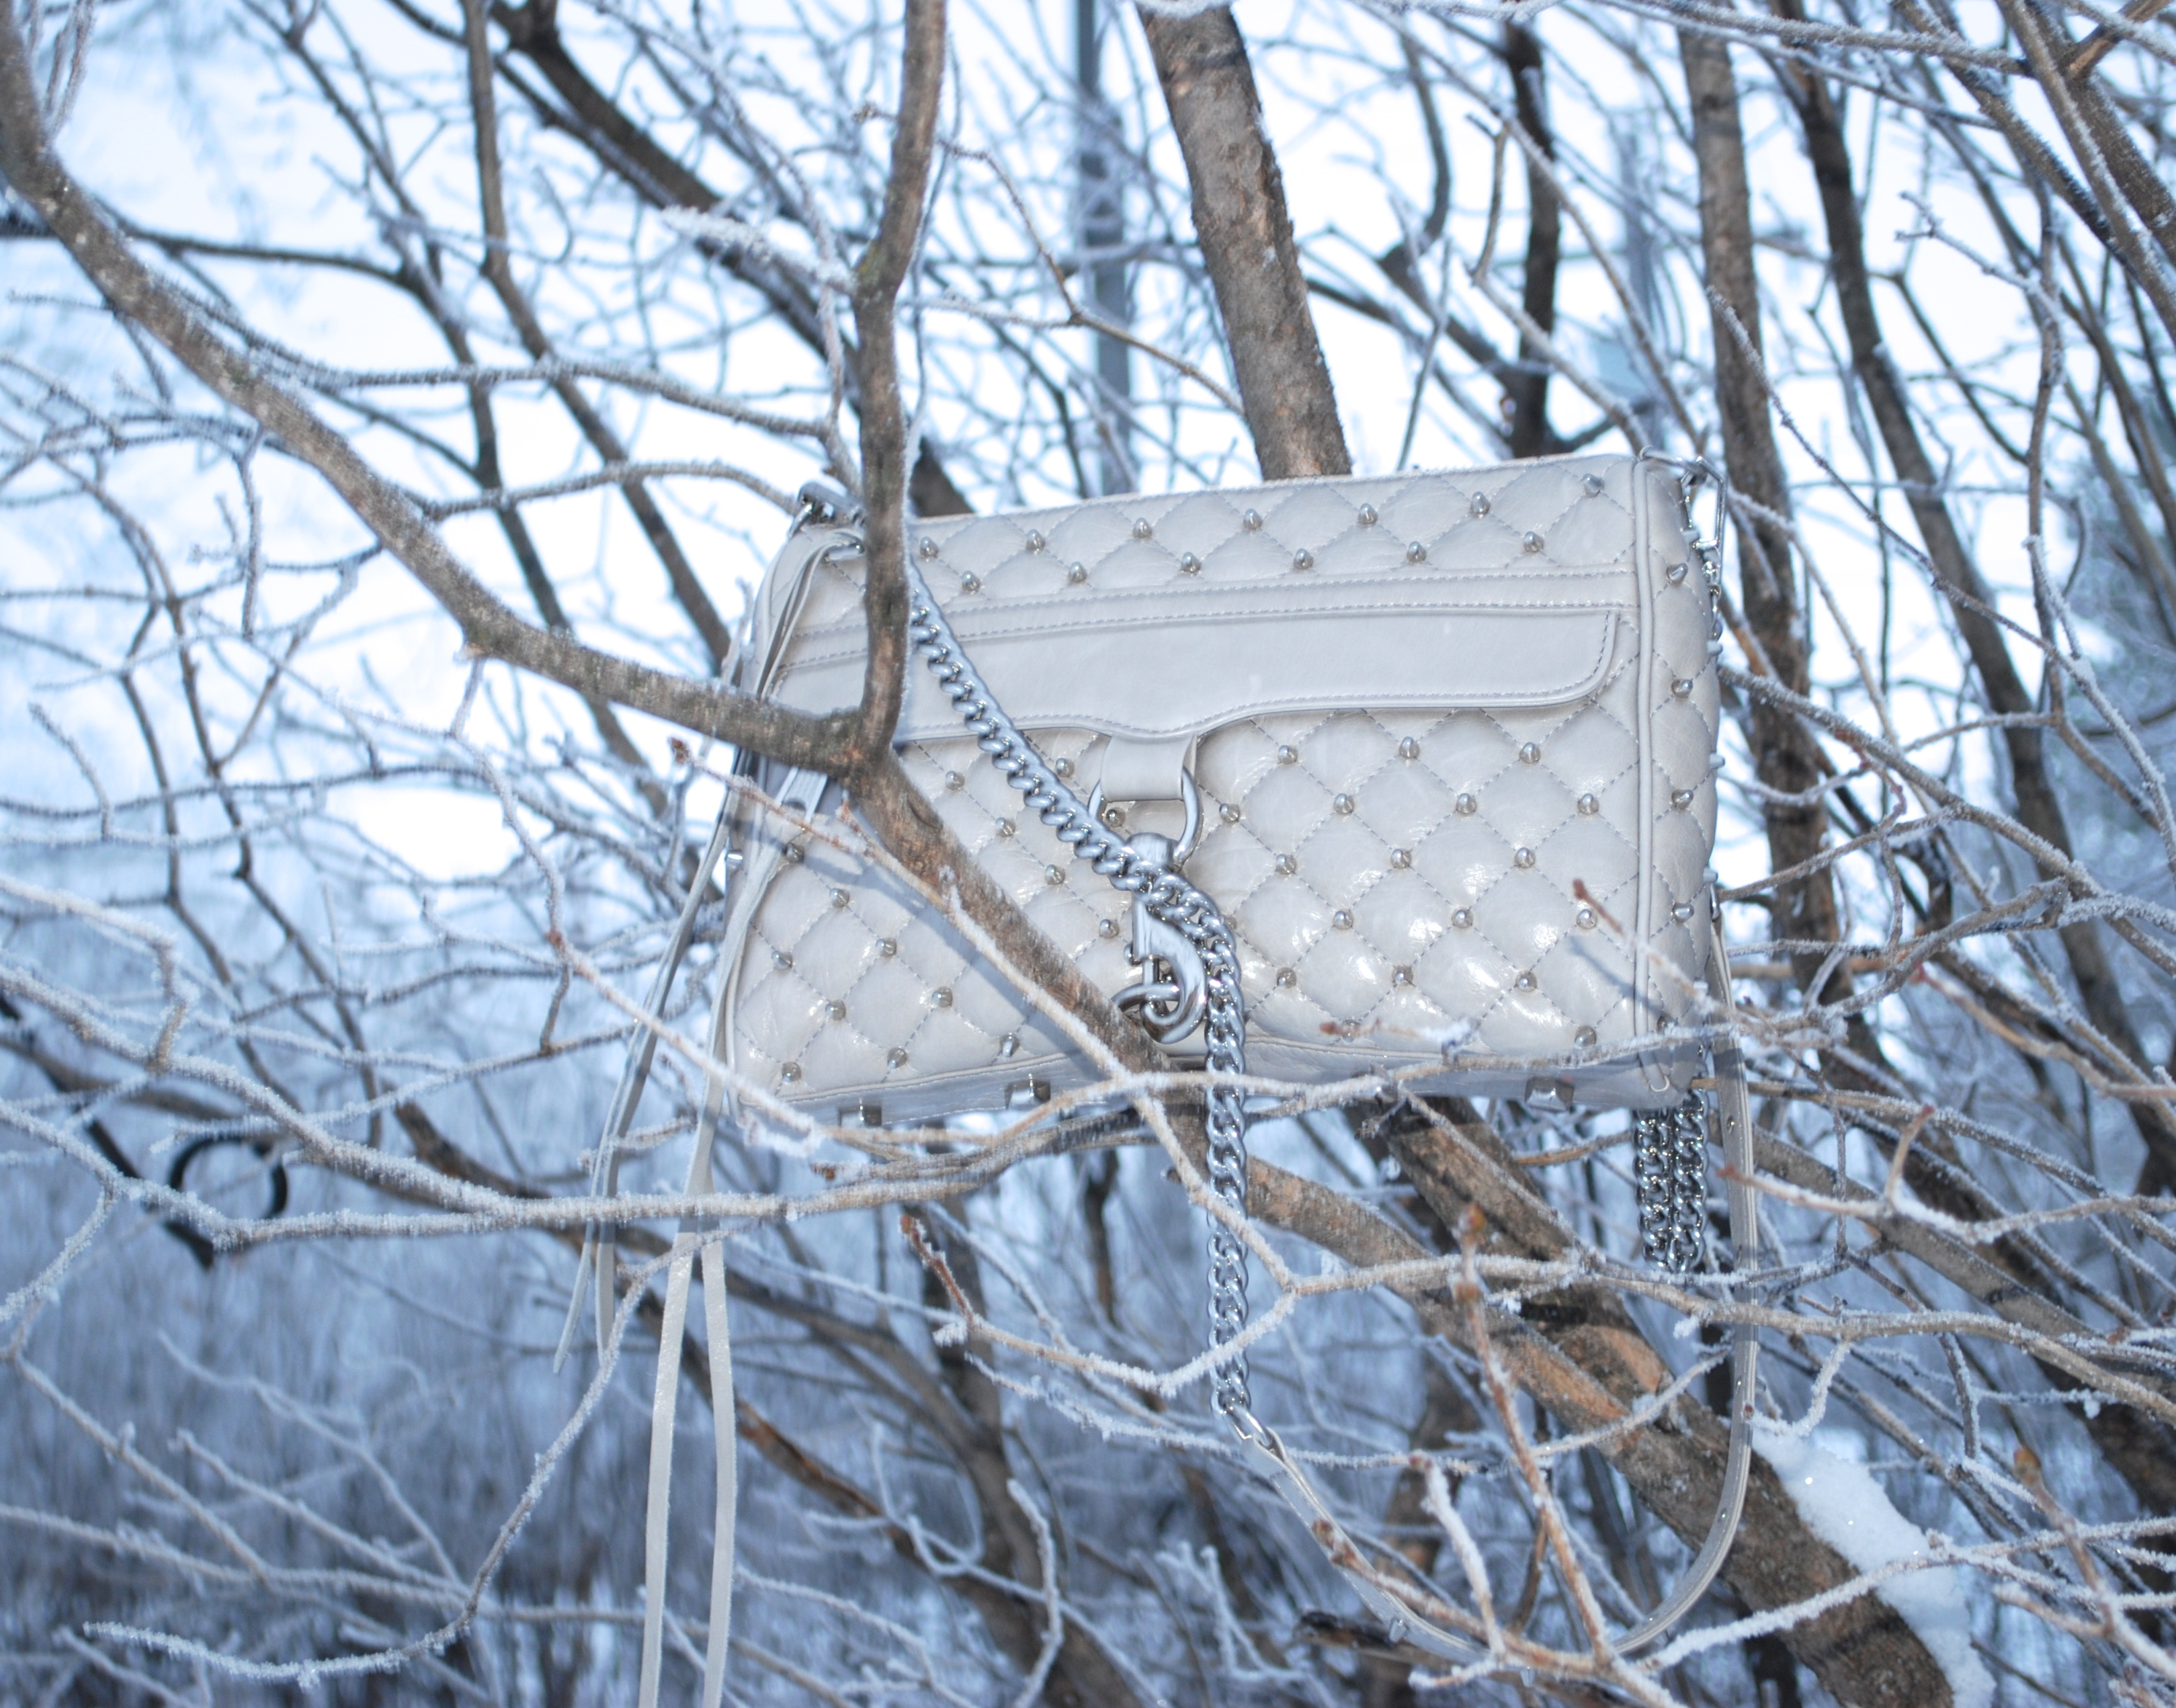 Purse shot in trees